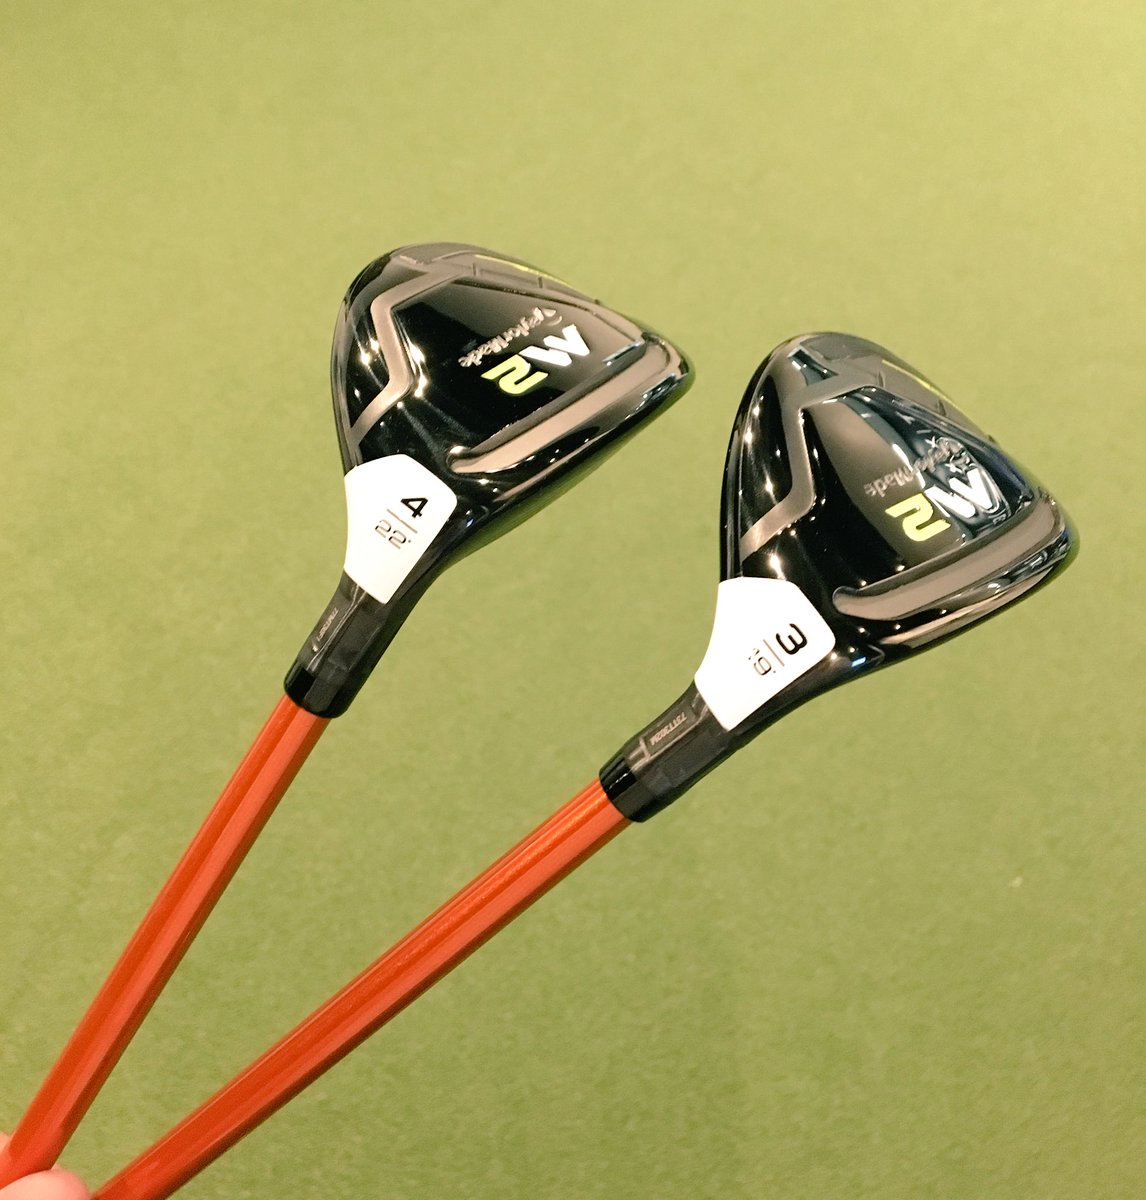 PSA These @TaylorMadeGolf #M2 shafted up with Graphite Design Tour AD Hybrids are LOOOOONG! #byeball #TXG<br>http://pic.twitter.com/rCtQhnipZJ